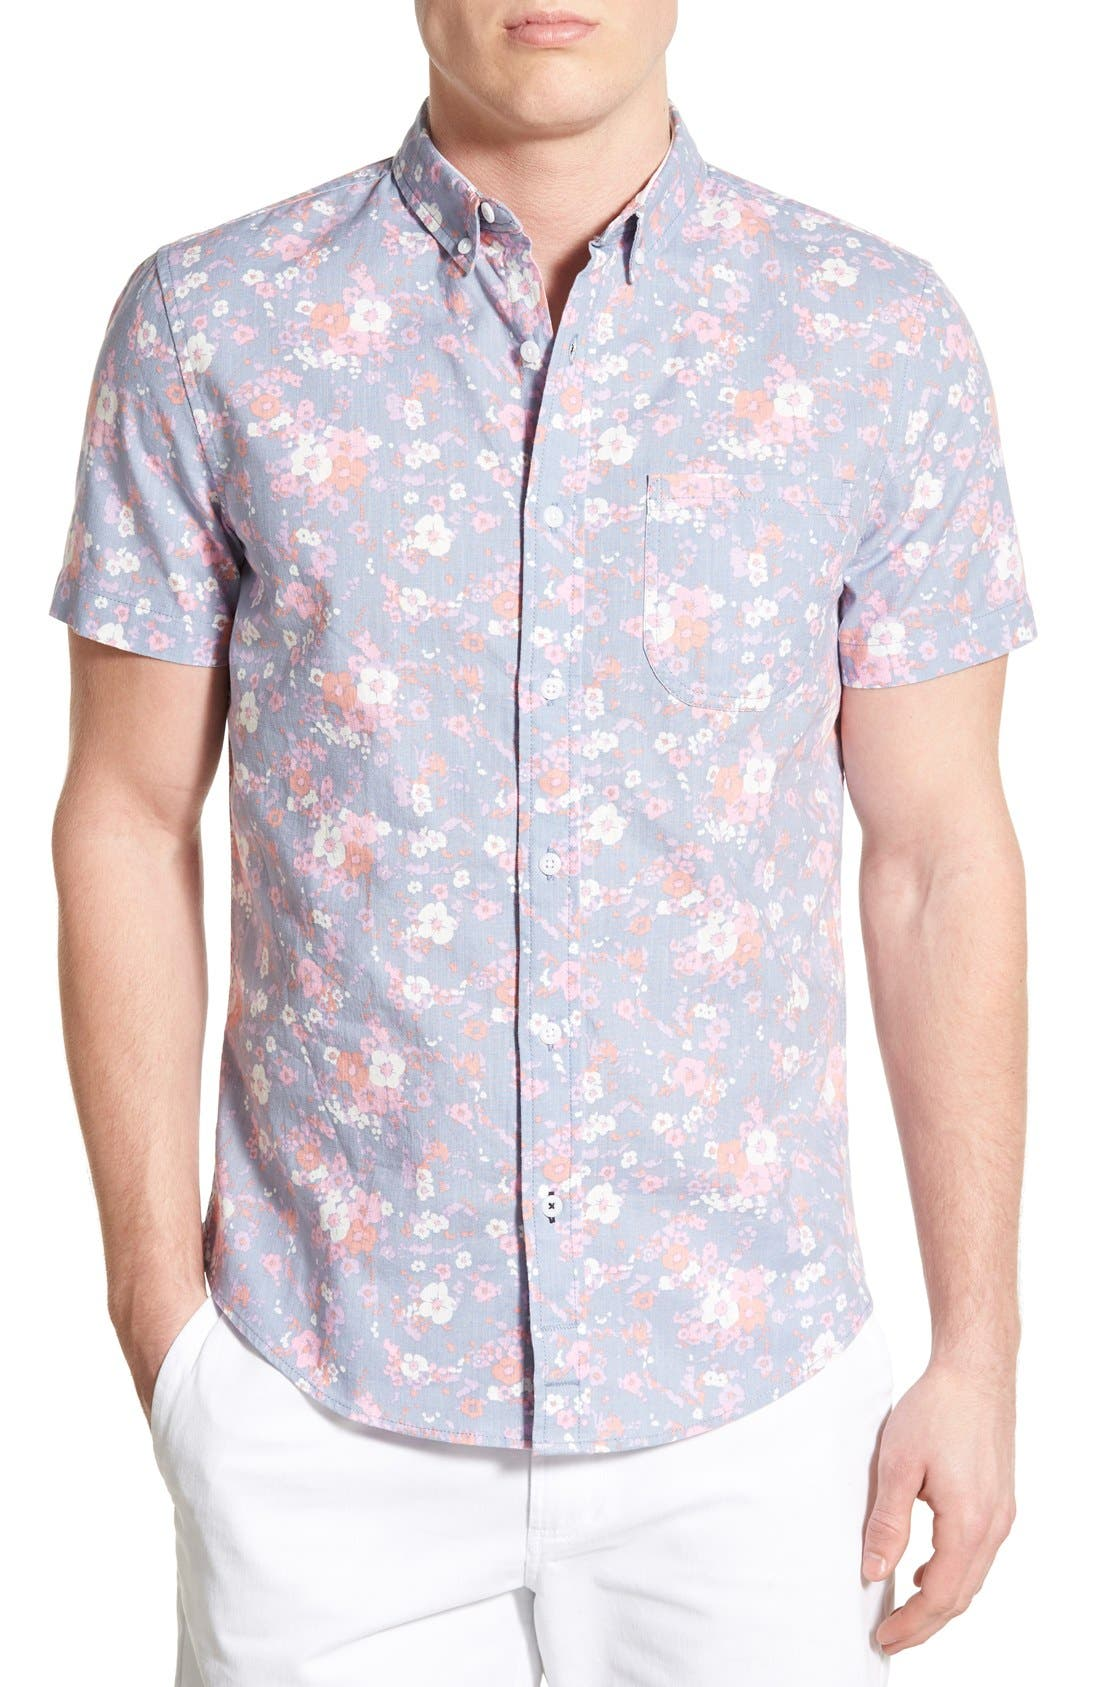 Alternate Image 1 Selected - 1901 'Gifford' Trim Fit Short Sleeve Floral Print Chambray Shirt